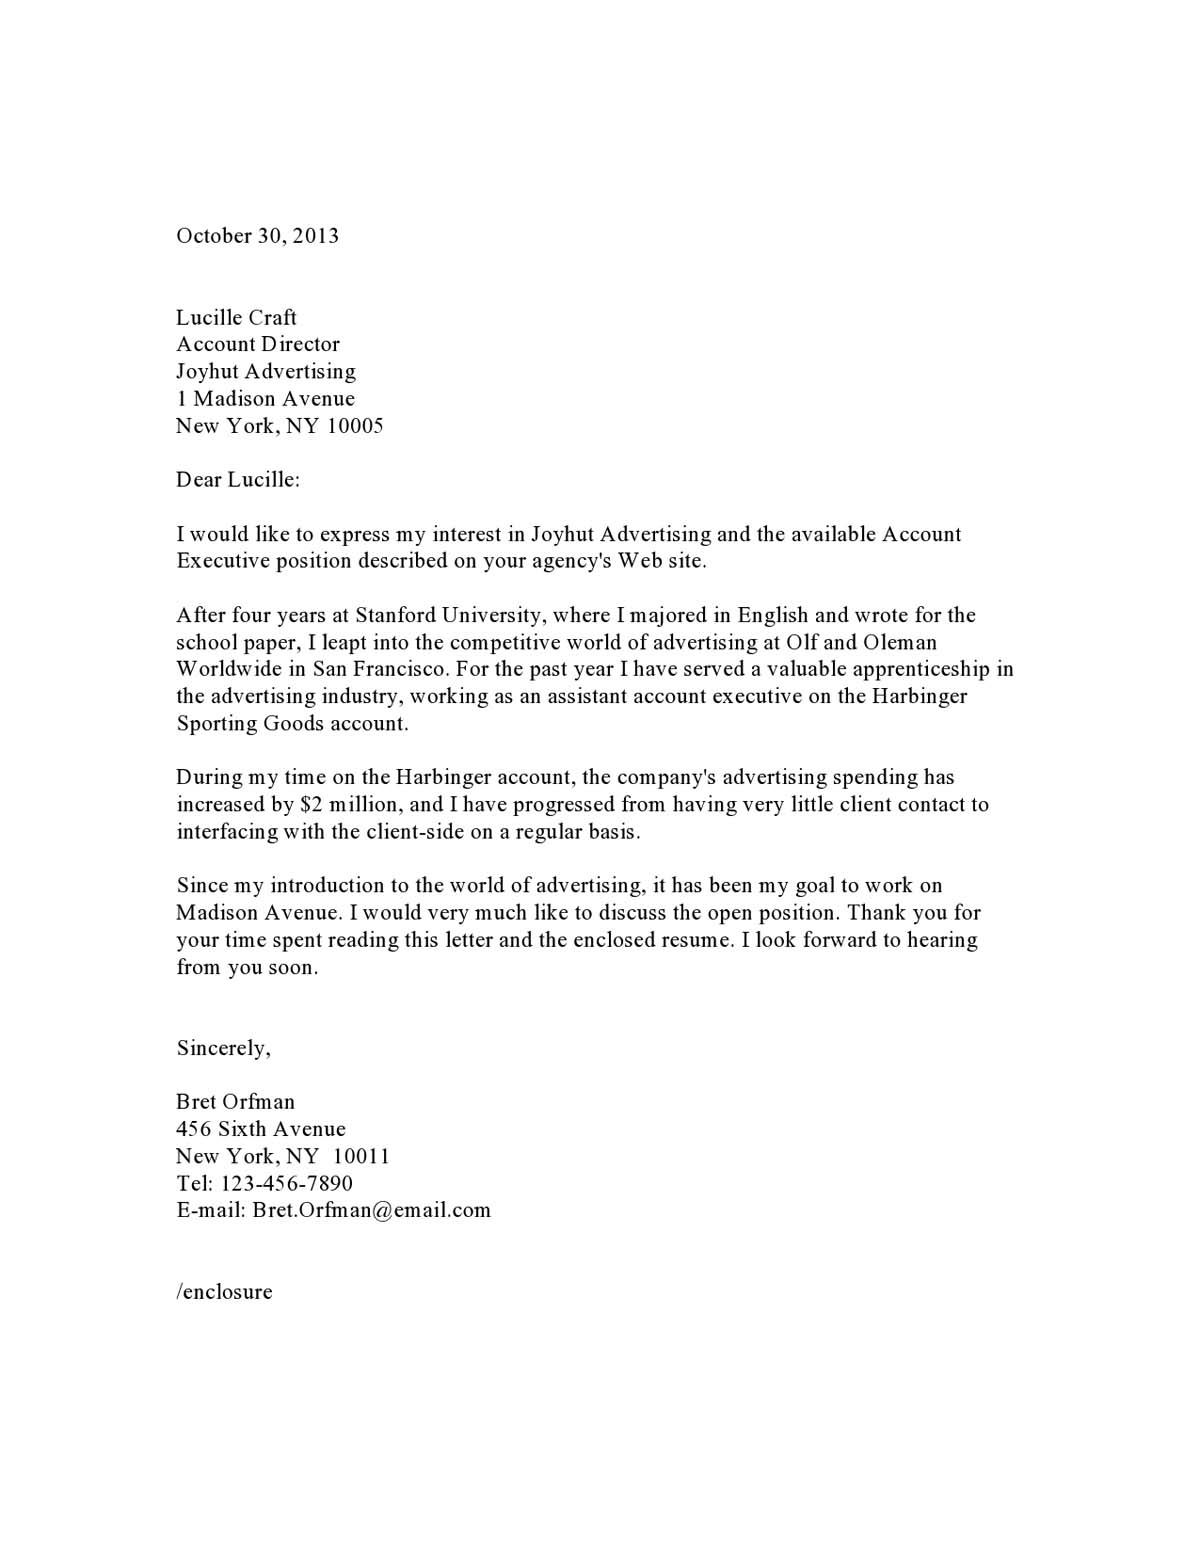 Cover Letter Examples Samples Templates